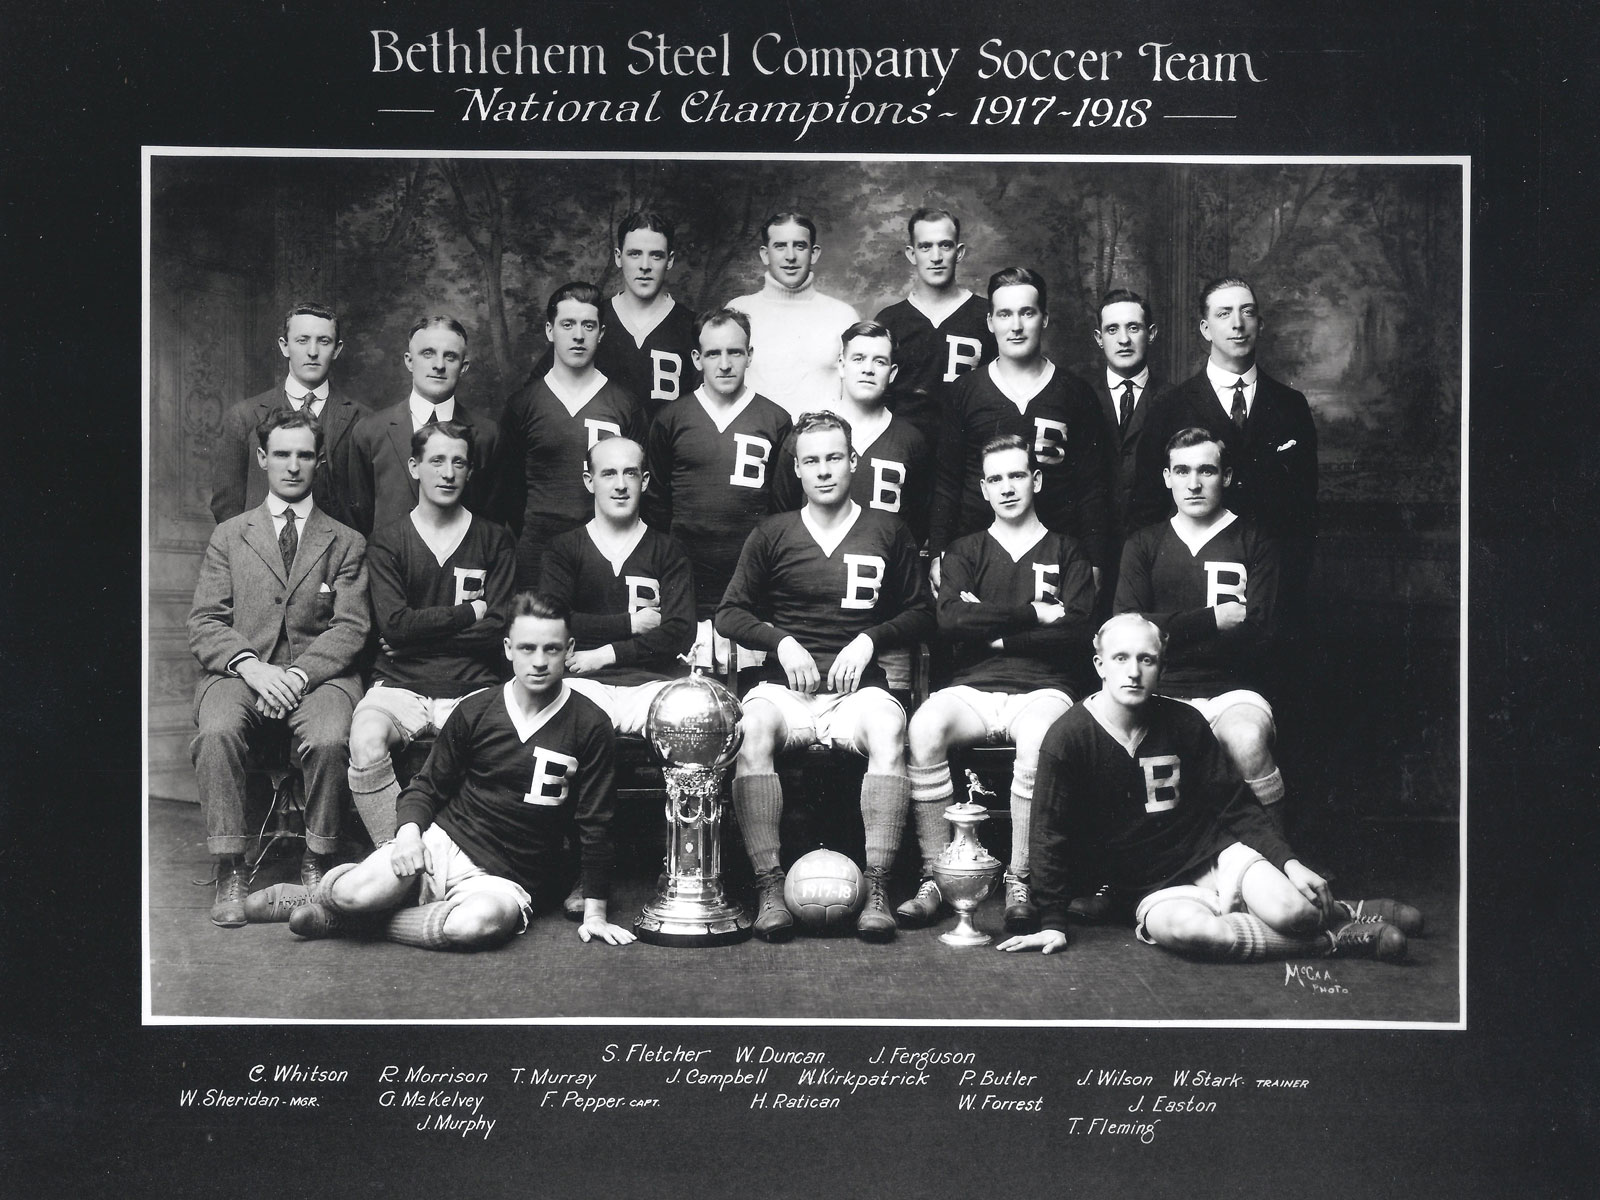 Bethlehem Steel is one of U.S. Soccer's most storied clubs